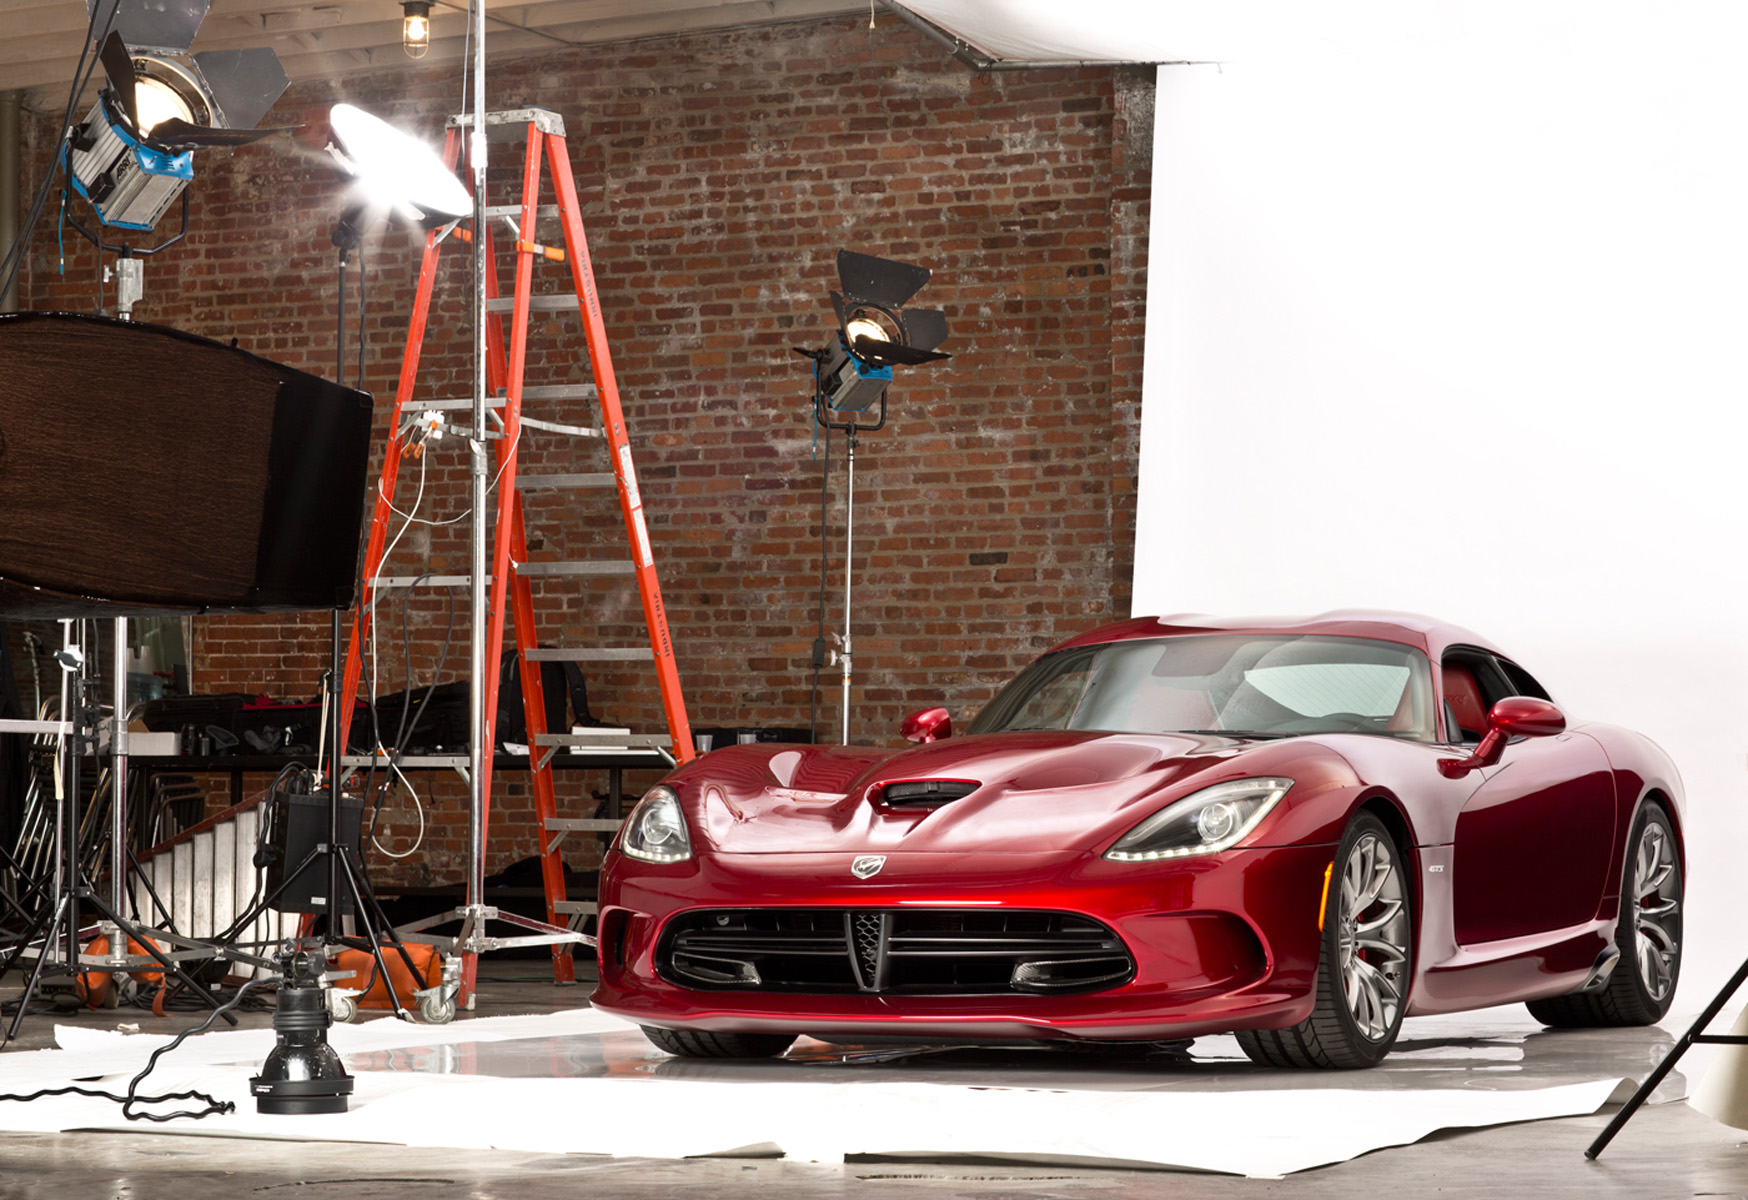 Photo of 2013 Dodge Viper for populatr mechanic.